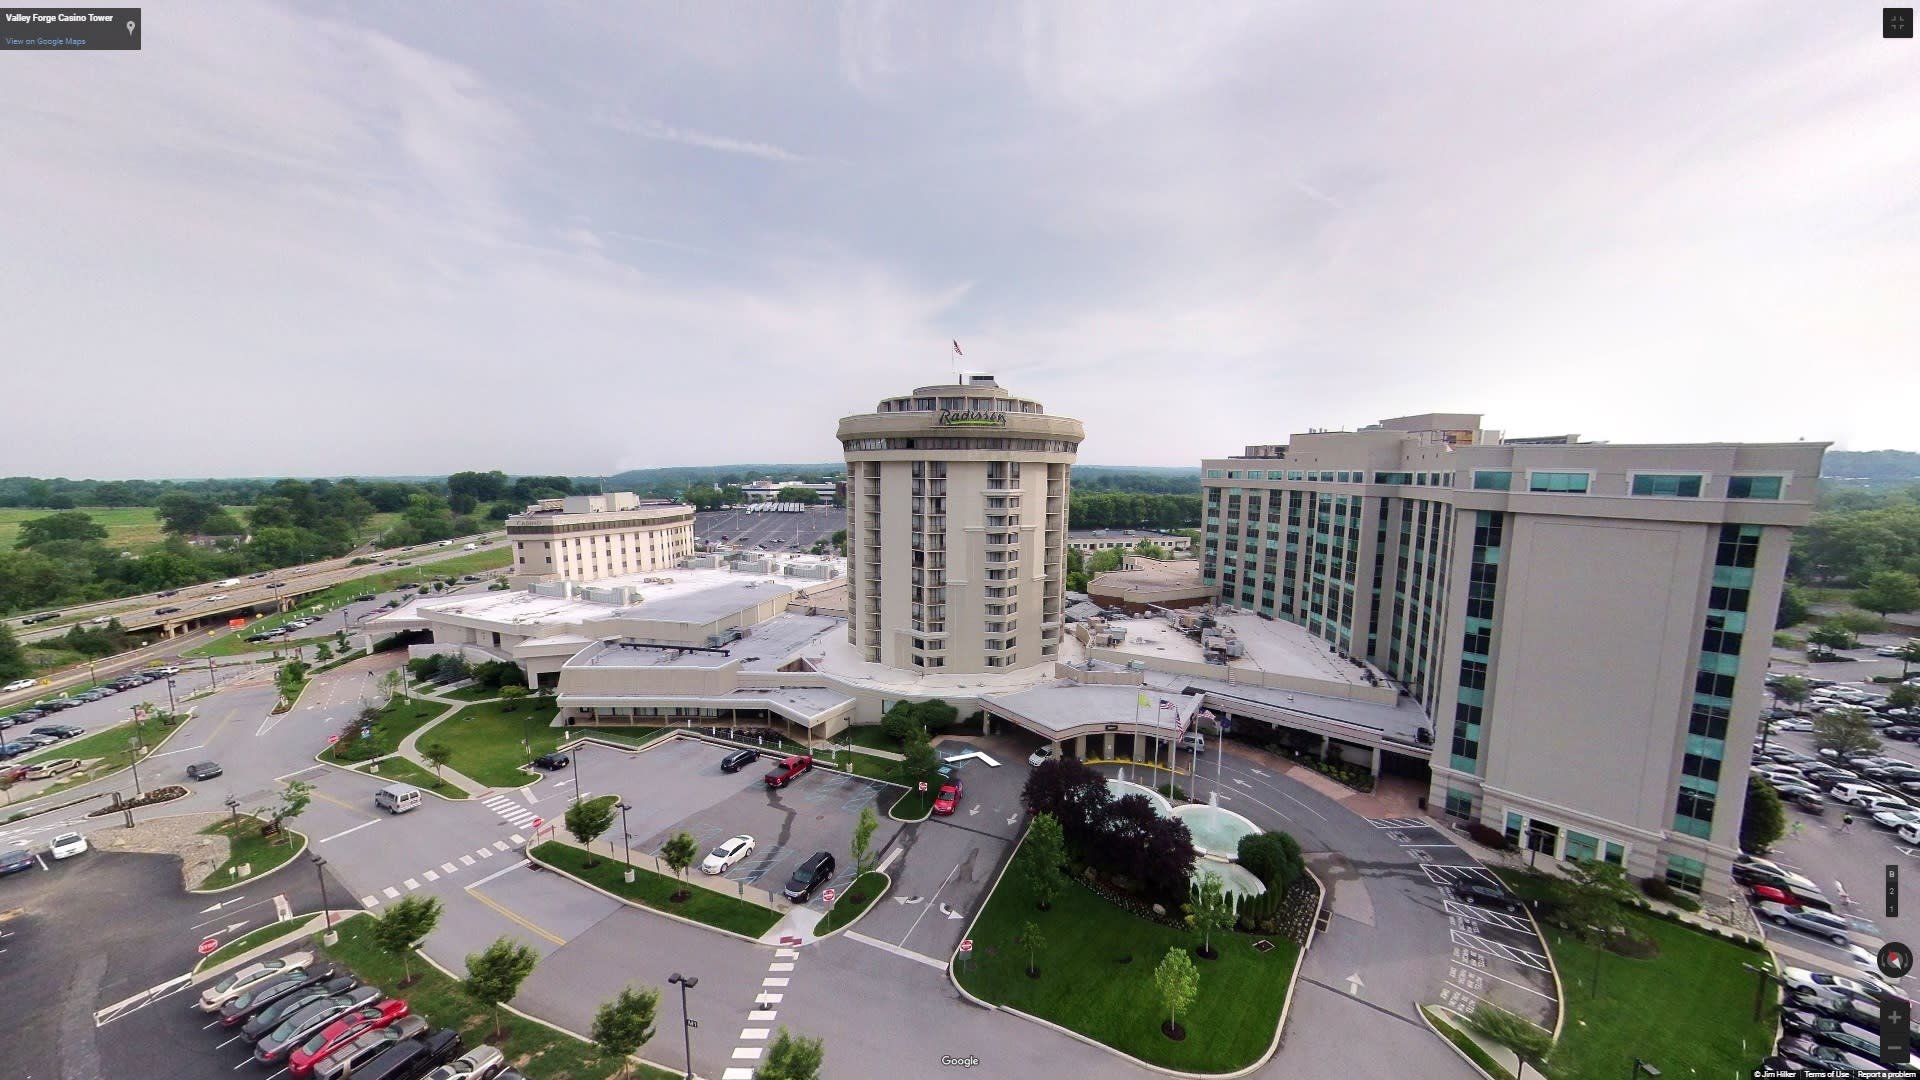 Valley Forge Casino Resort & Convention Center